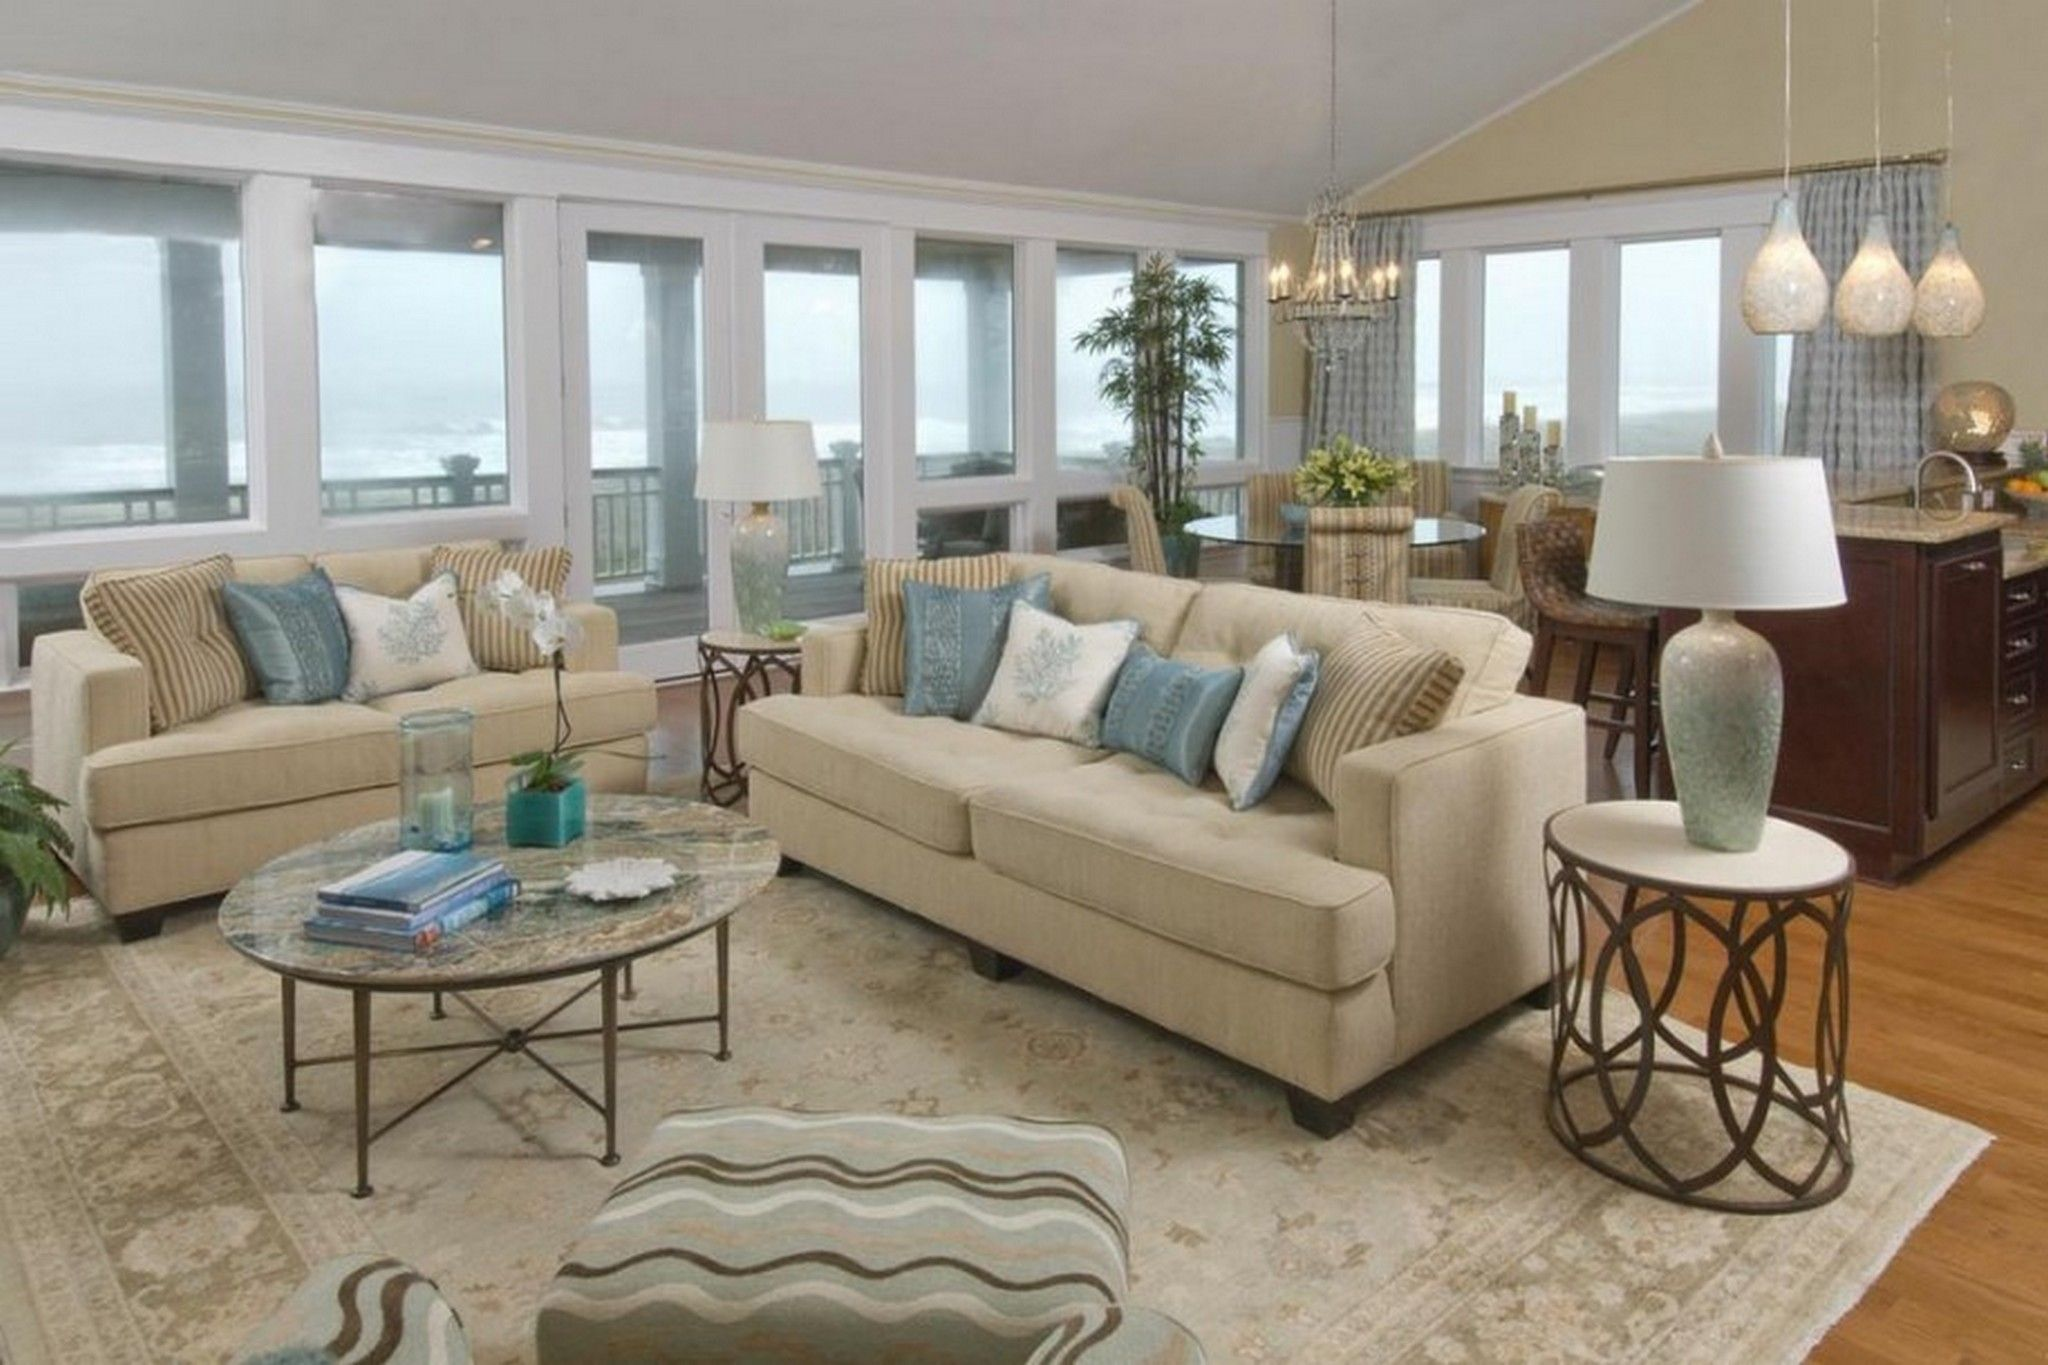 Beach Themed Living Room Design Amazing Beach Decor For The Living Room  Beach House Interiors Decorating Inspiration